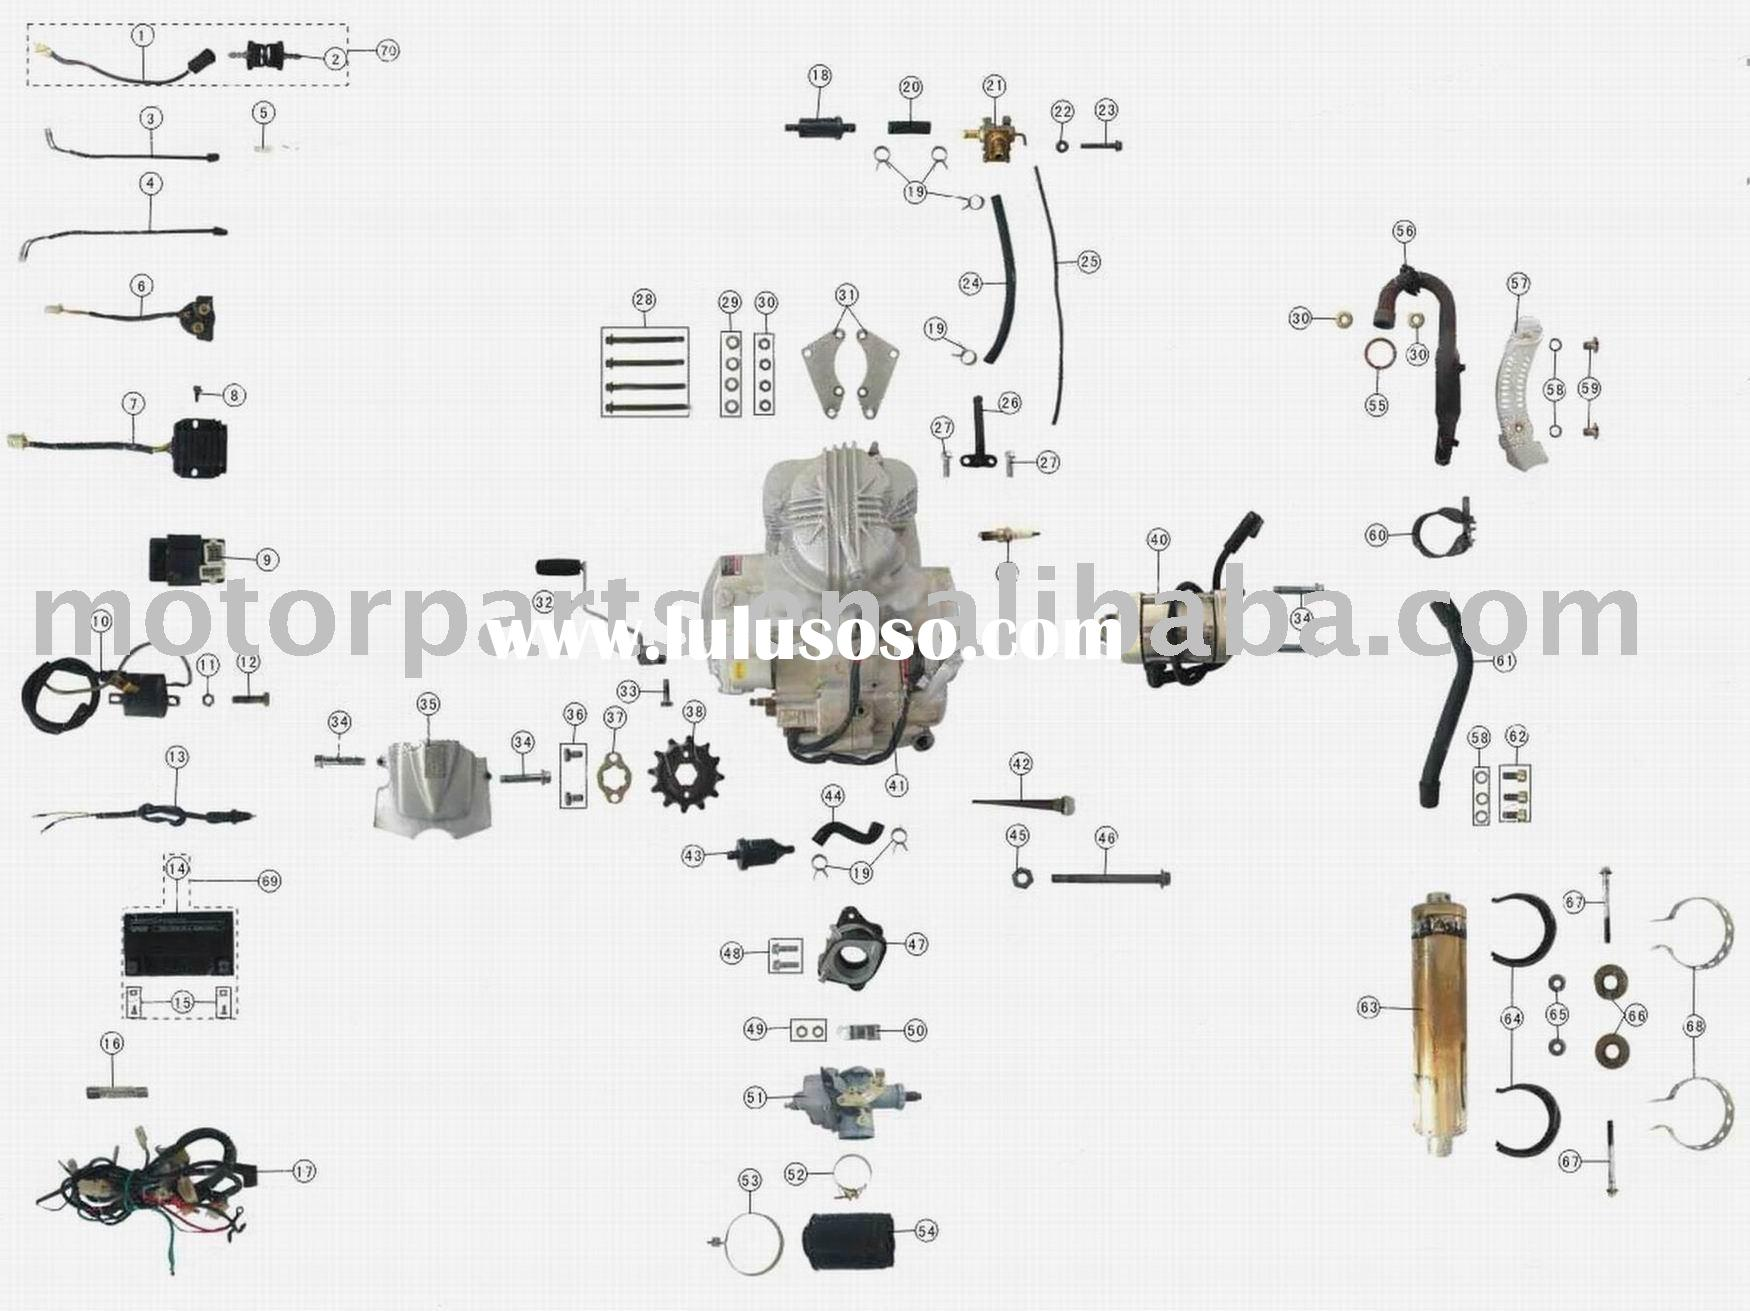 carburetor parts mikuni diagram atv carburetors pictures